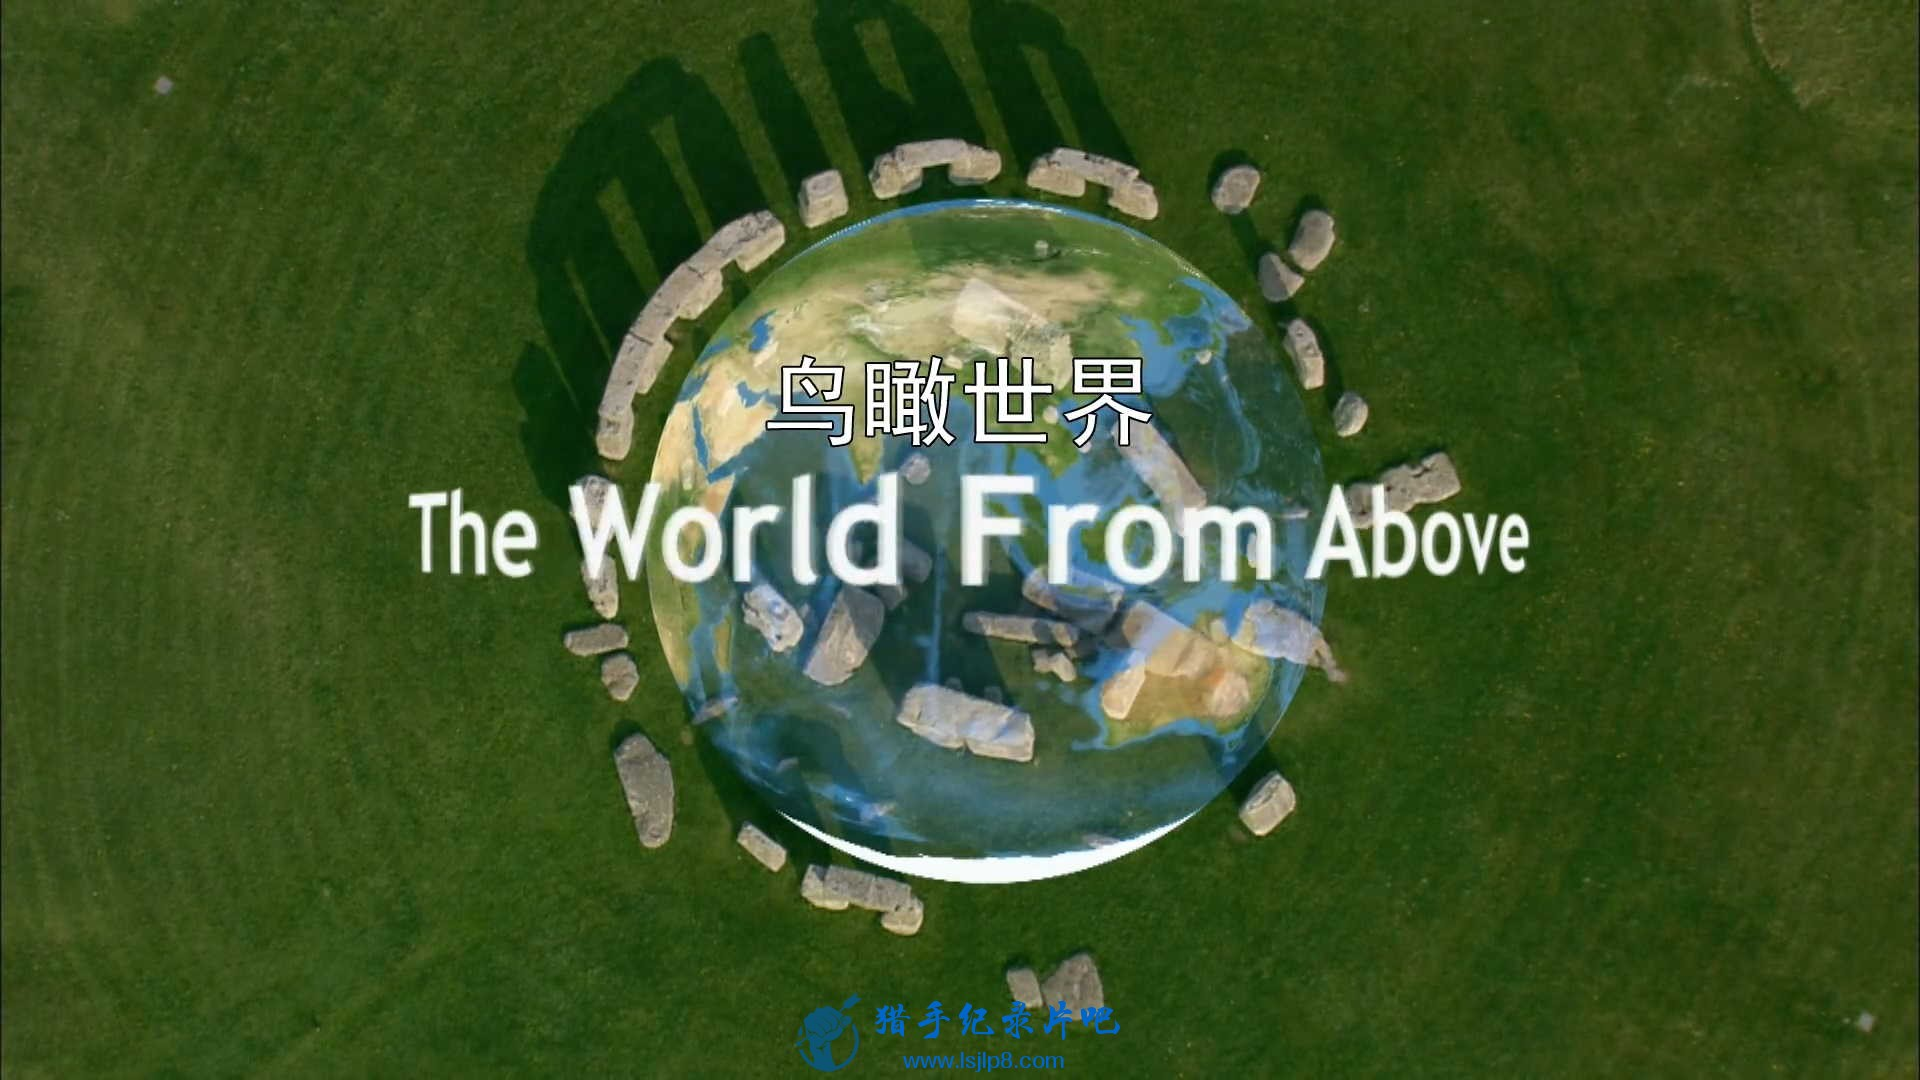 The.World.from.Above.2010.S01E01.1080p.WEB-DL.H264.AAC-TJUPT.mp4_20200521_102921.jpg